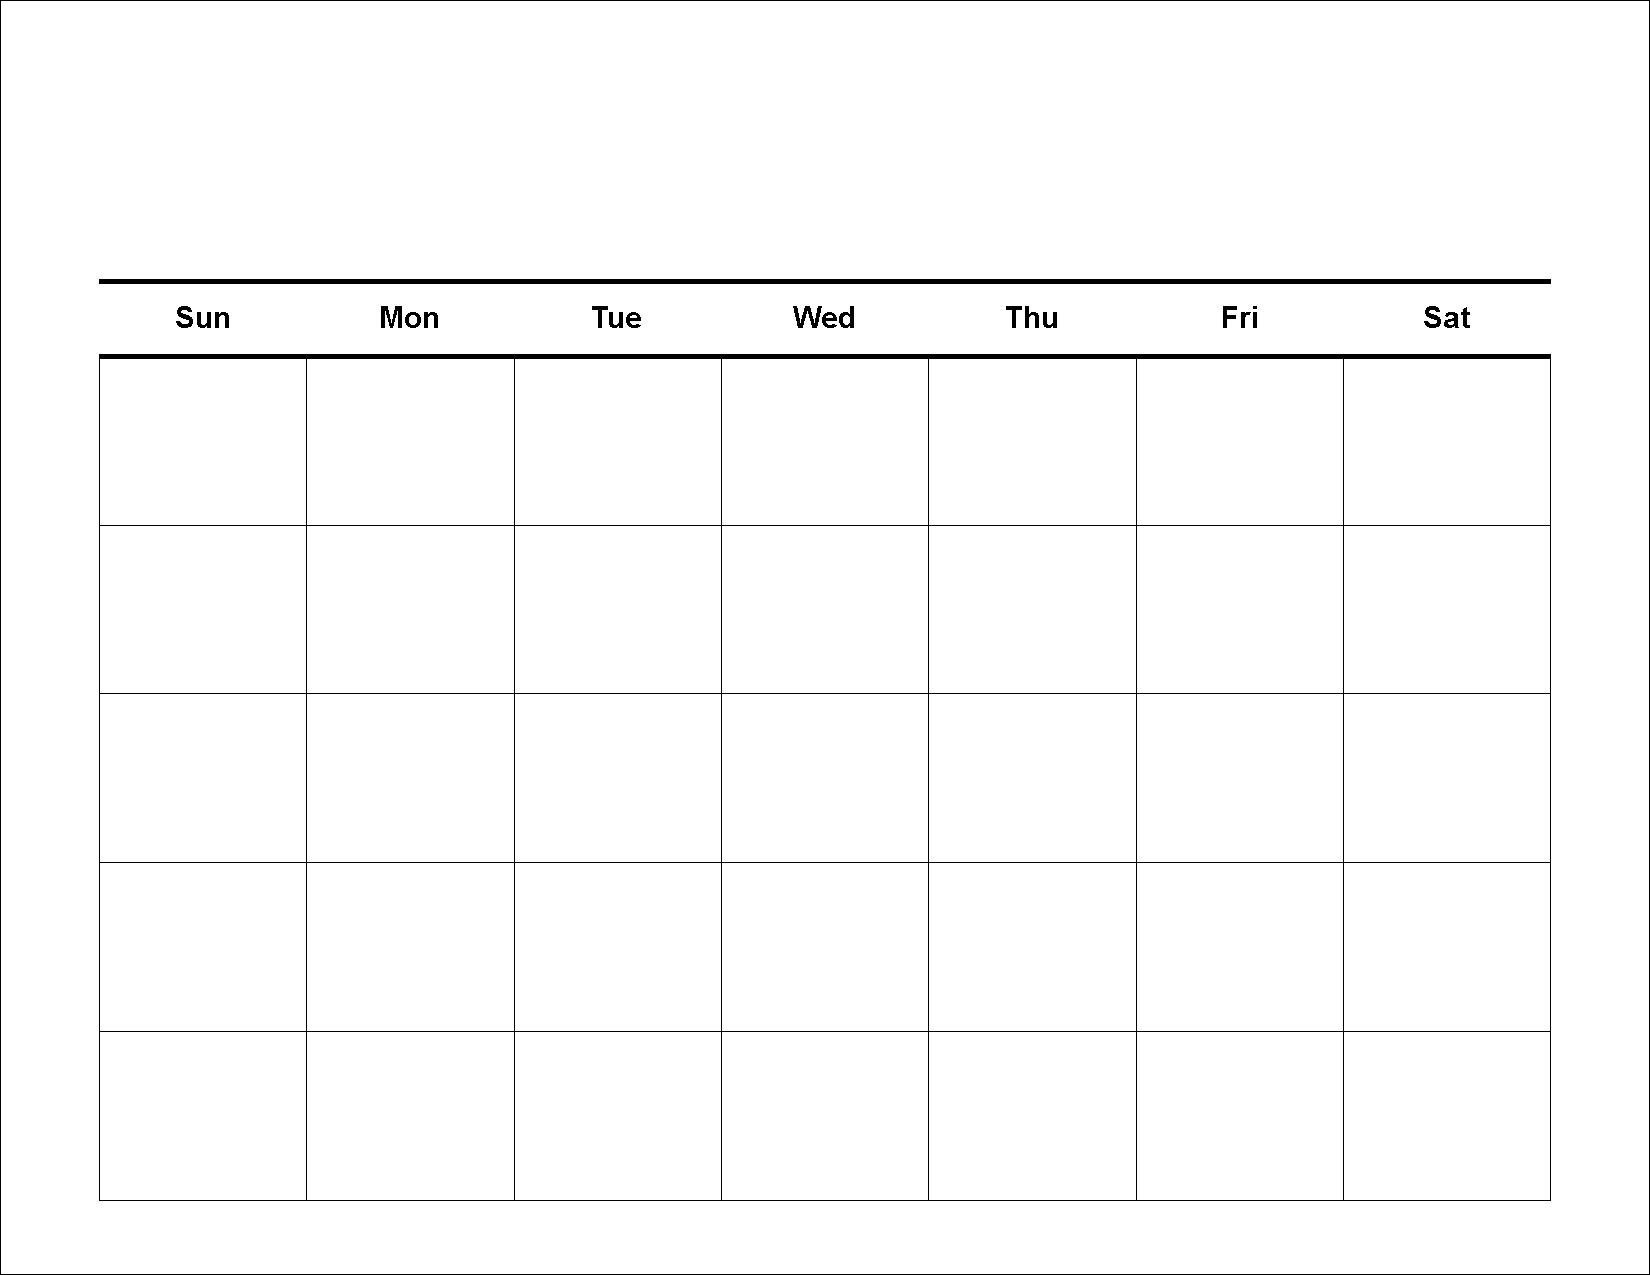 Free Printable 5 Day Monthly Calendar 2019 | Holidays Calendar Template  Printable 5 Day Monthly Calendar